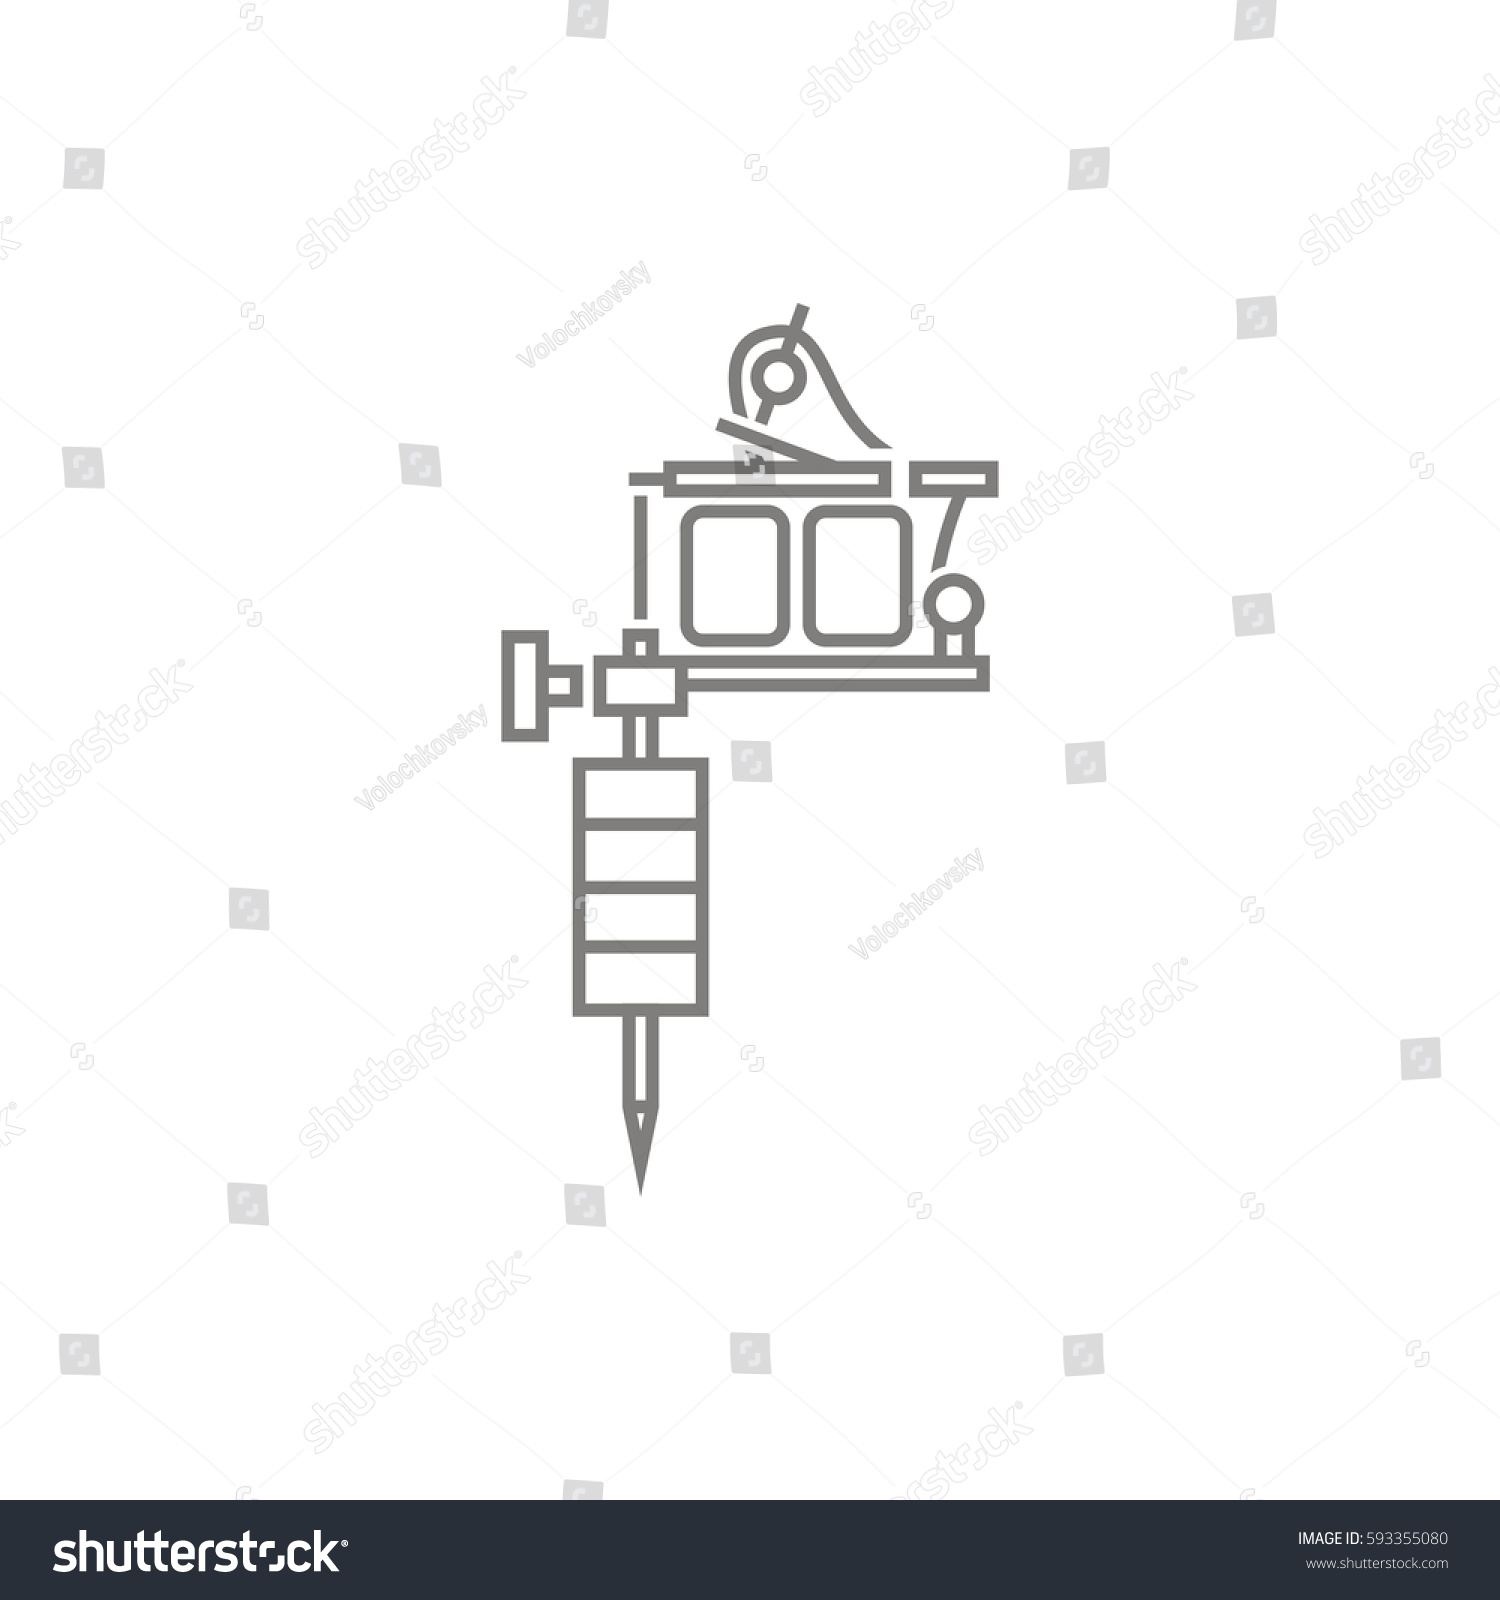 Tattoo Machine Vector Icon Stock Royalty Free 593355080 Tattoomachinediagramjpg